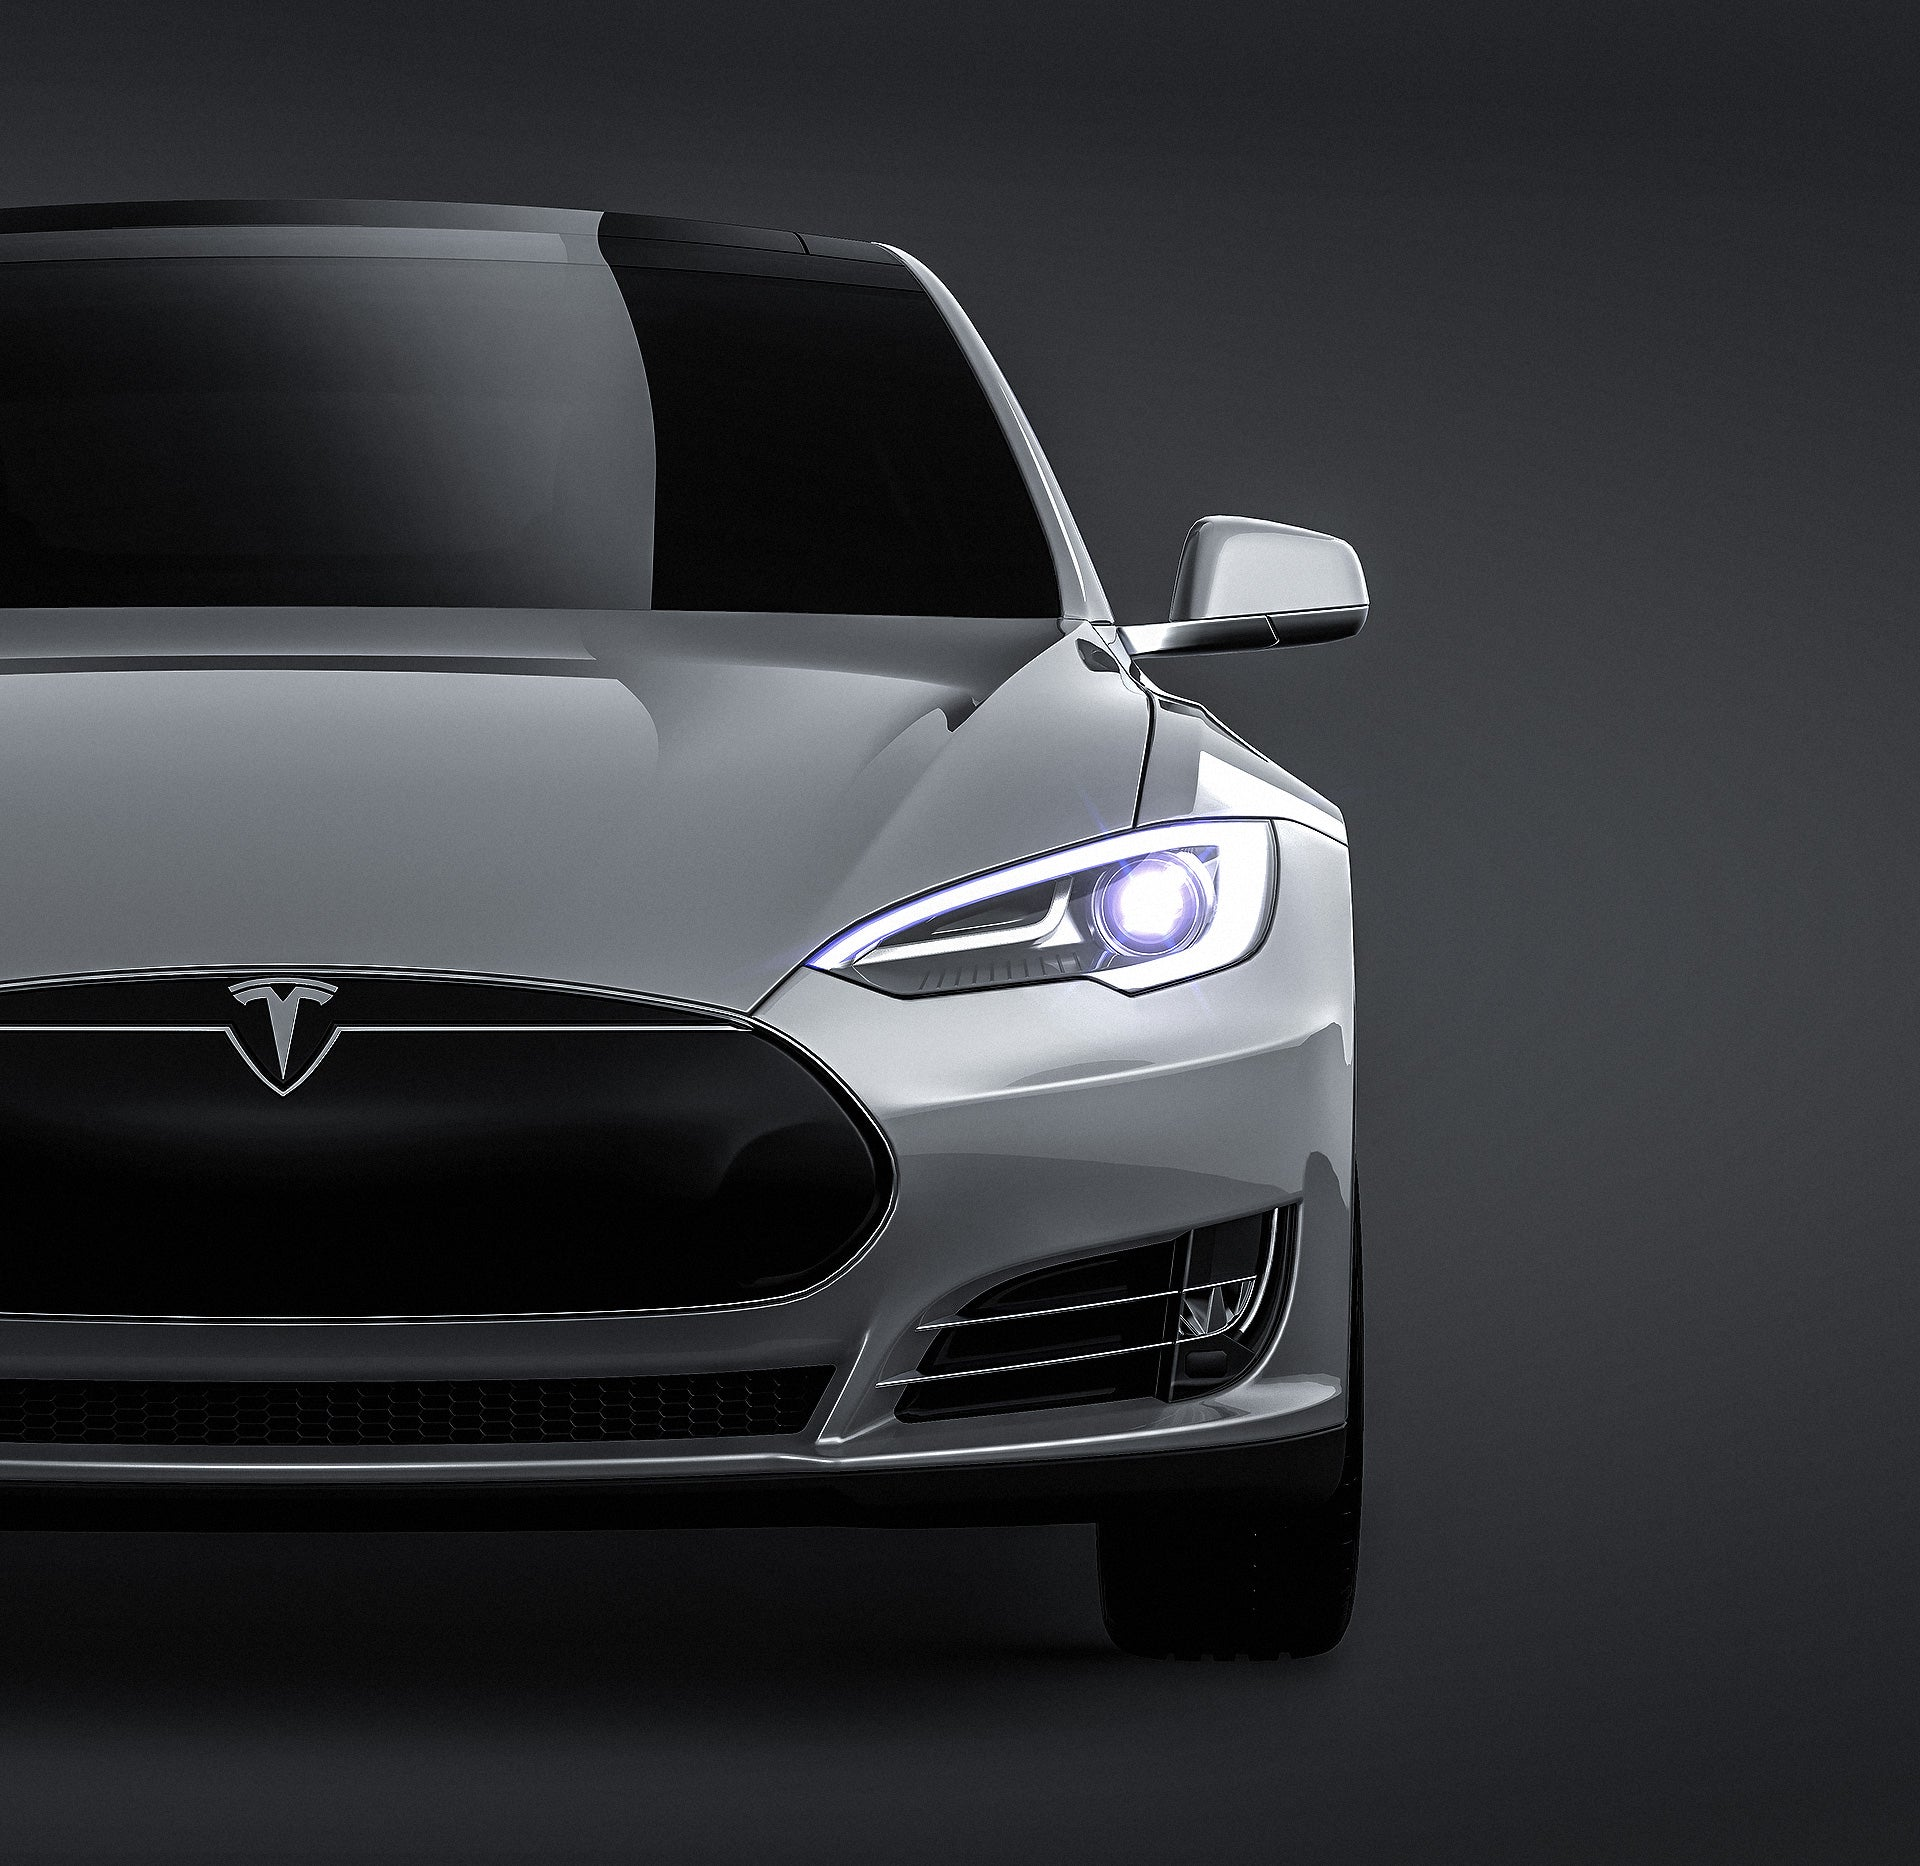 Tesla Model S glossy finish - all sides Car Mockup Template.psd